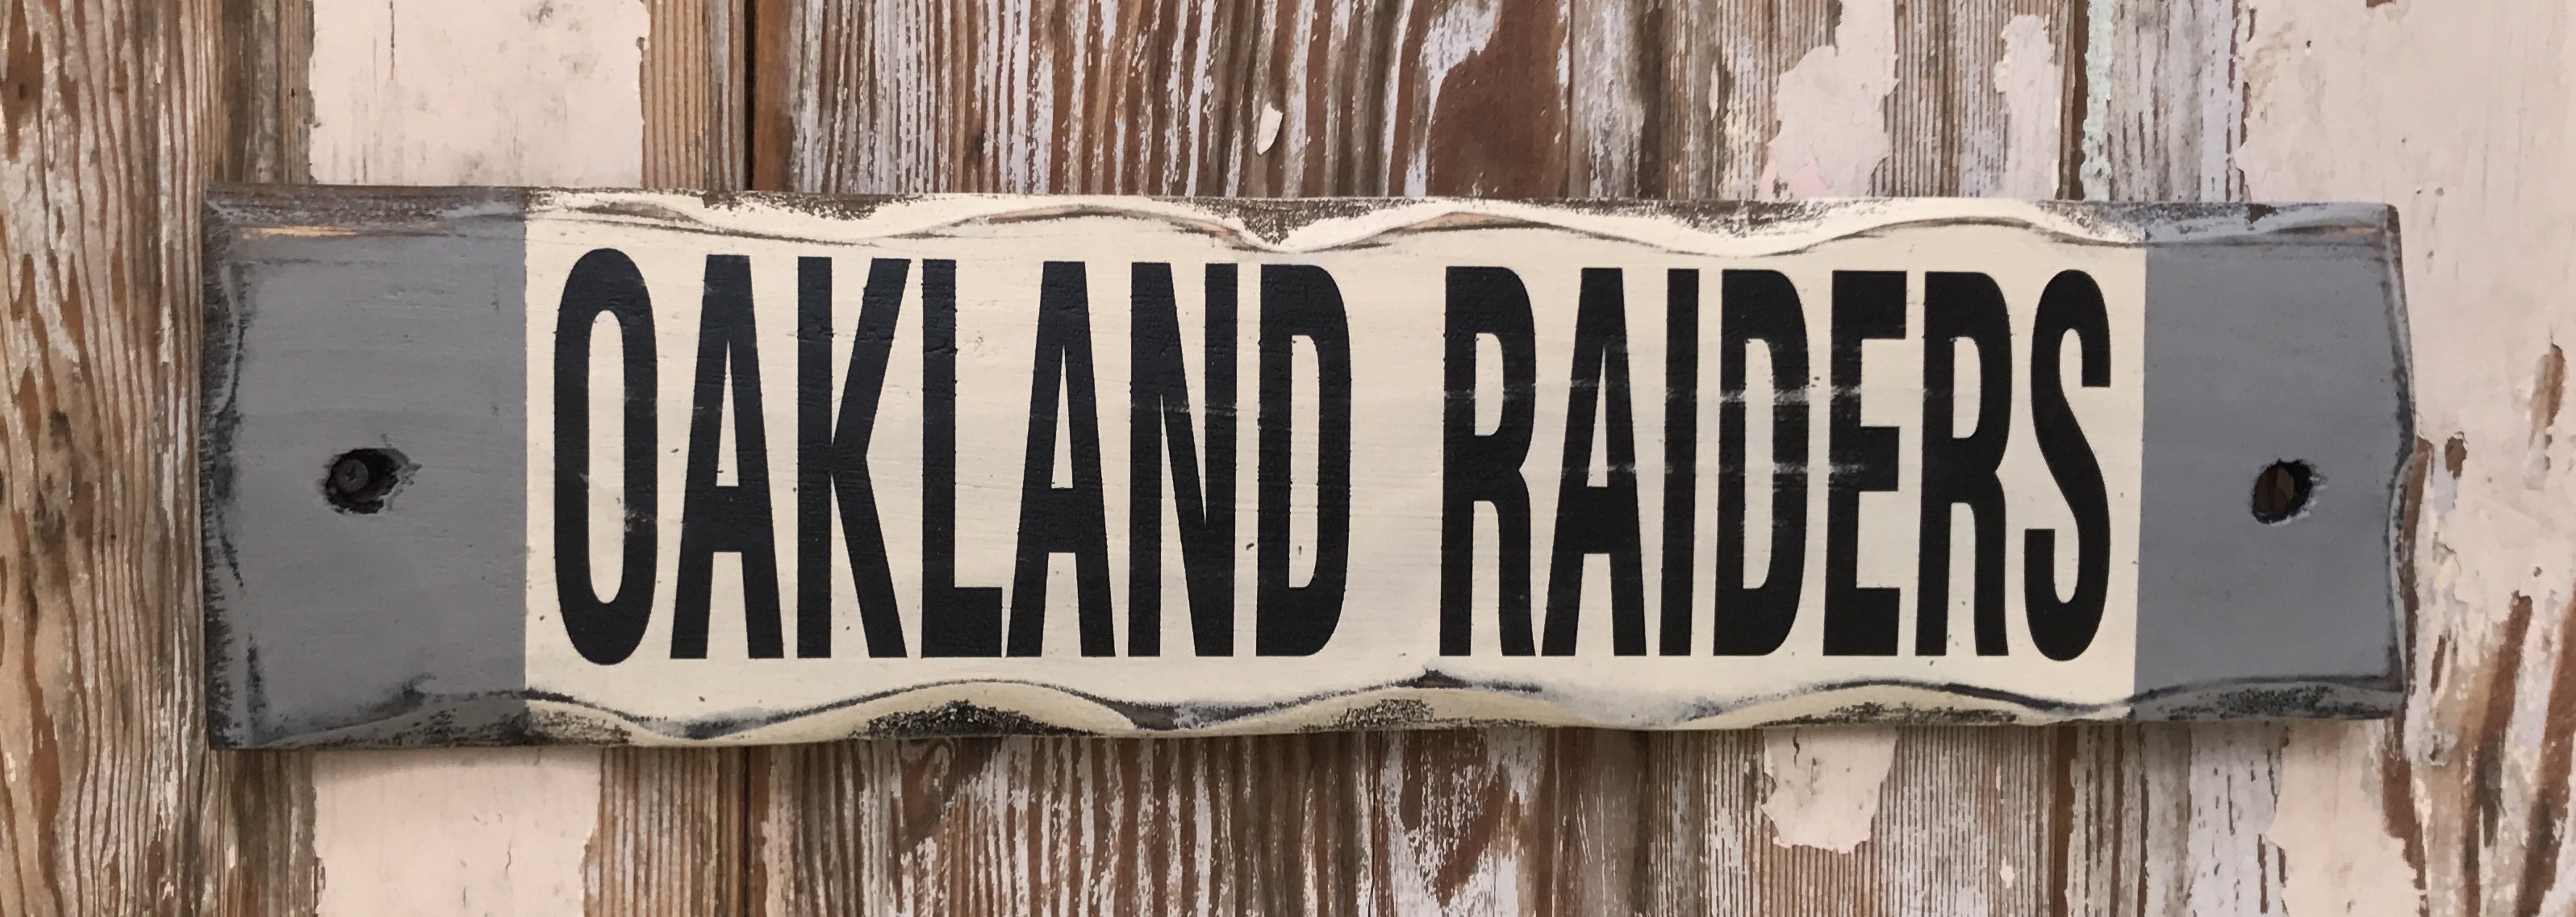 Oakland Raiders.  Rustic Wood Sign